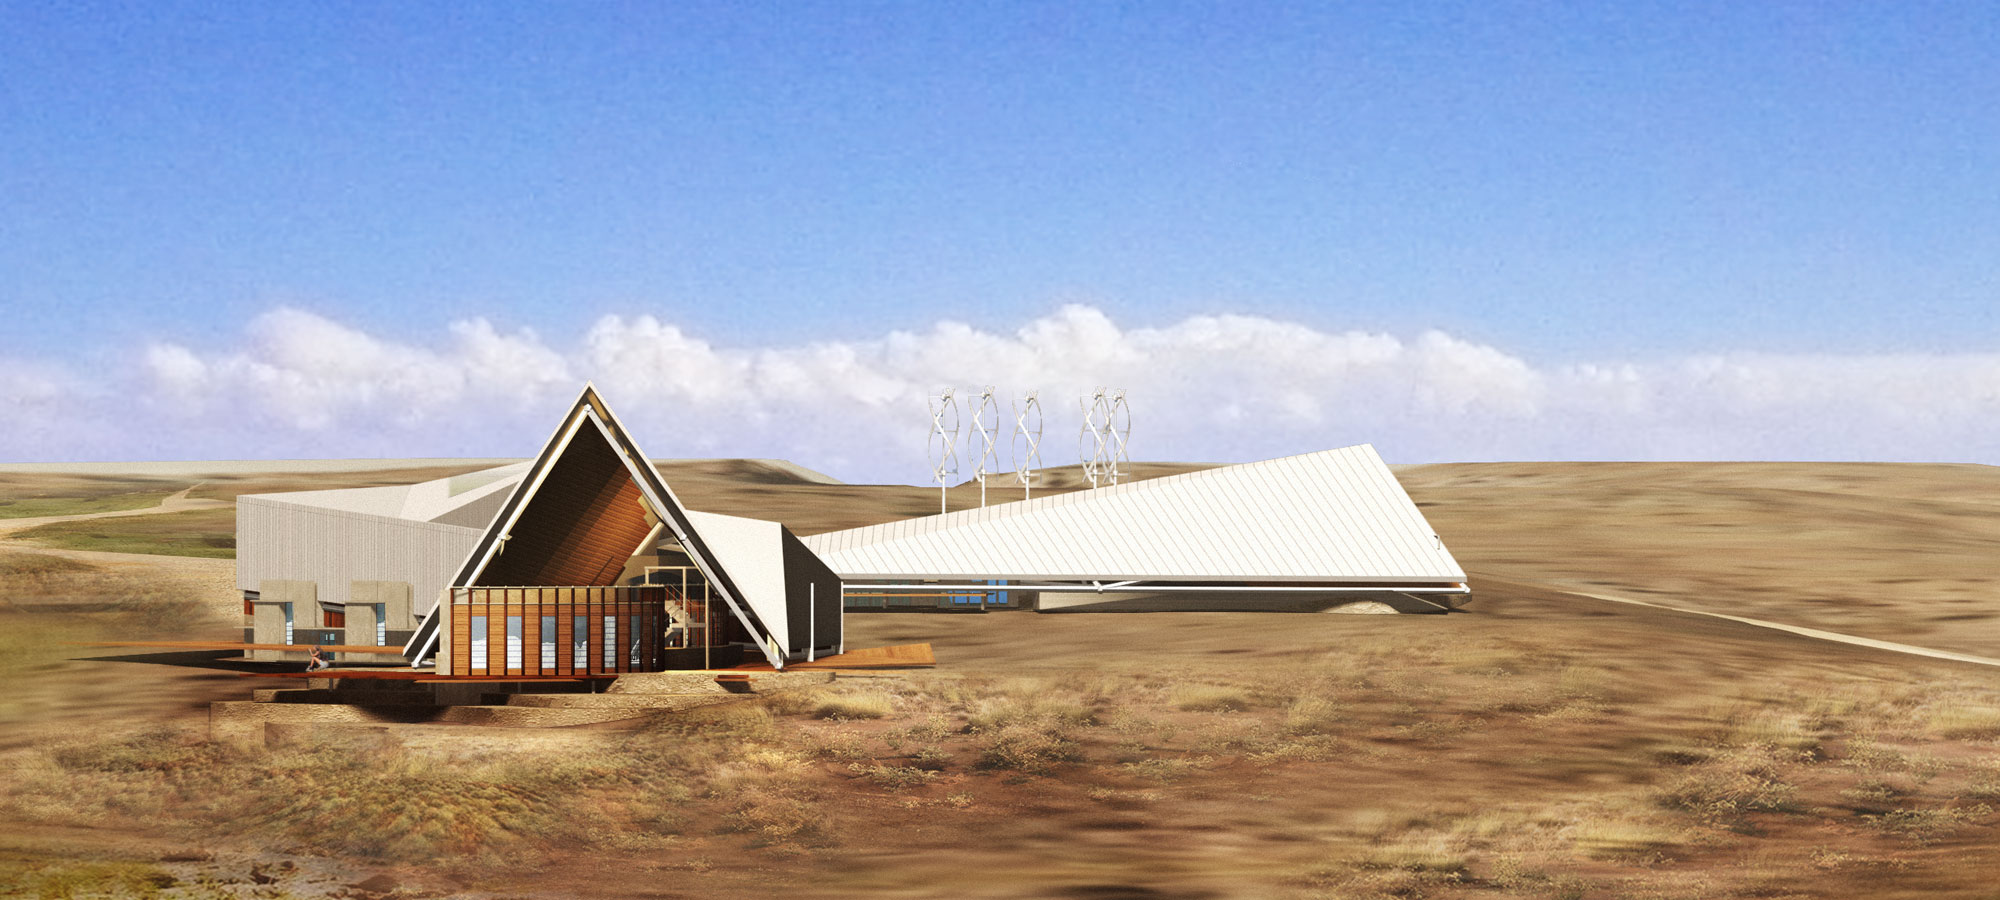 Ningaloo Resort - Rendering of Competition Entry